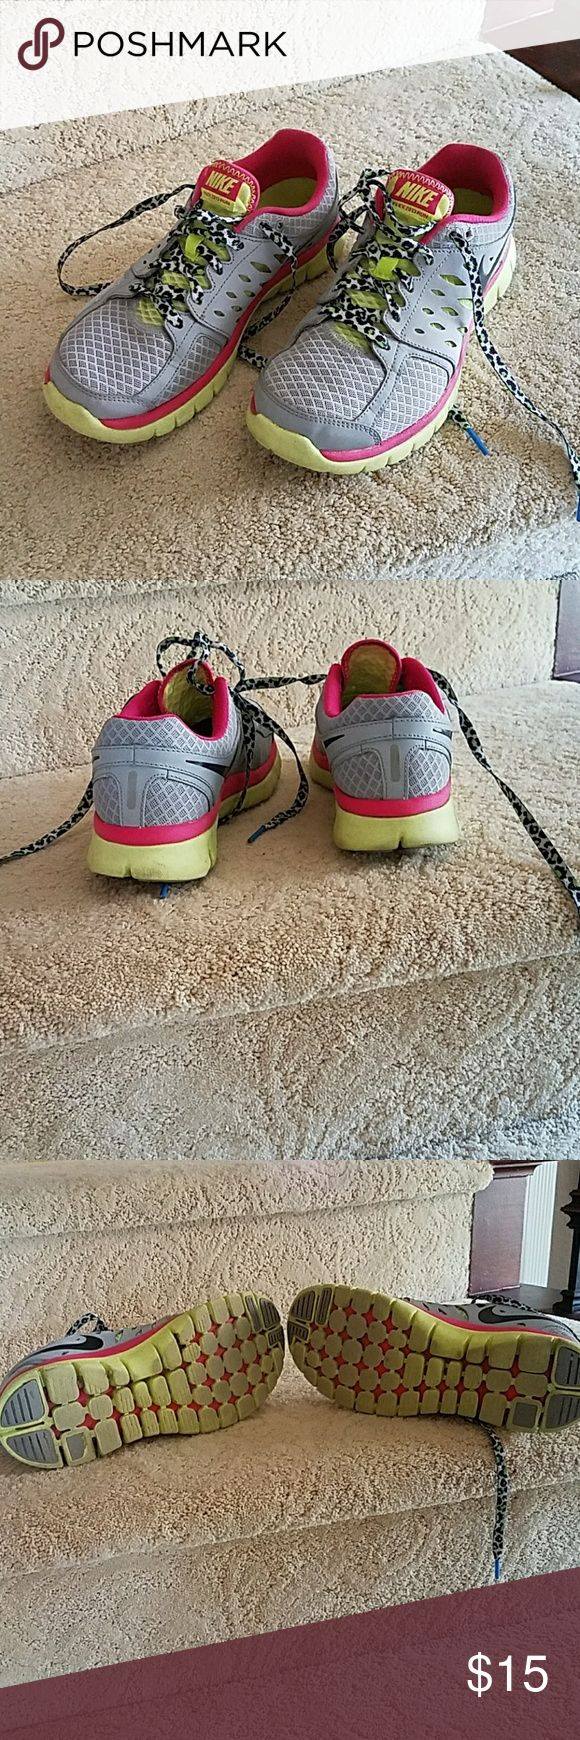 Nike workout shoes Grey, neon green and pink flex 2013 run shoes.  Well loved. nik Nike Shoes Sneakers